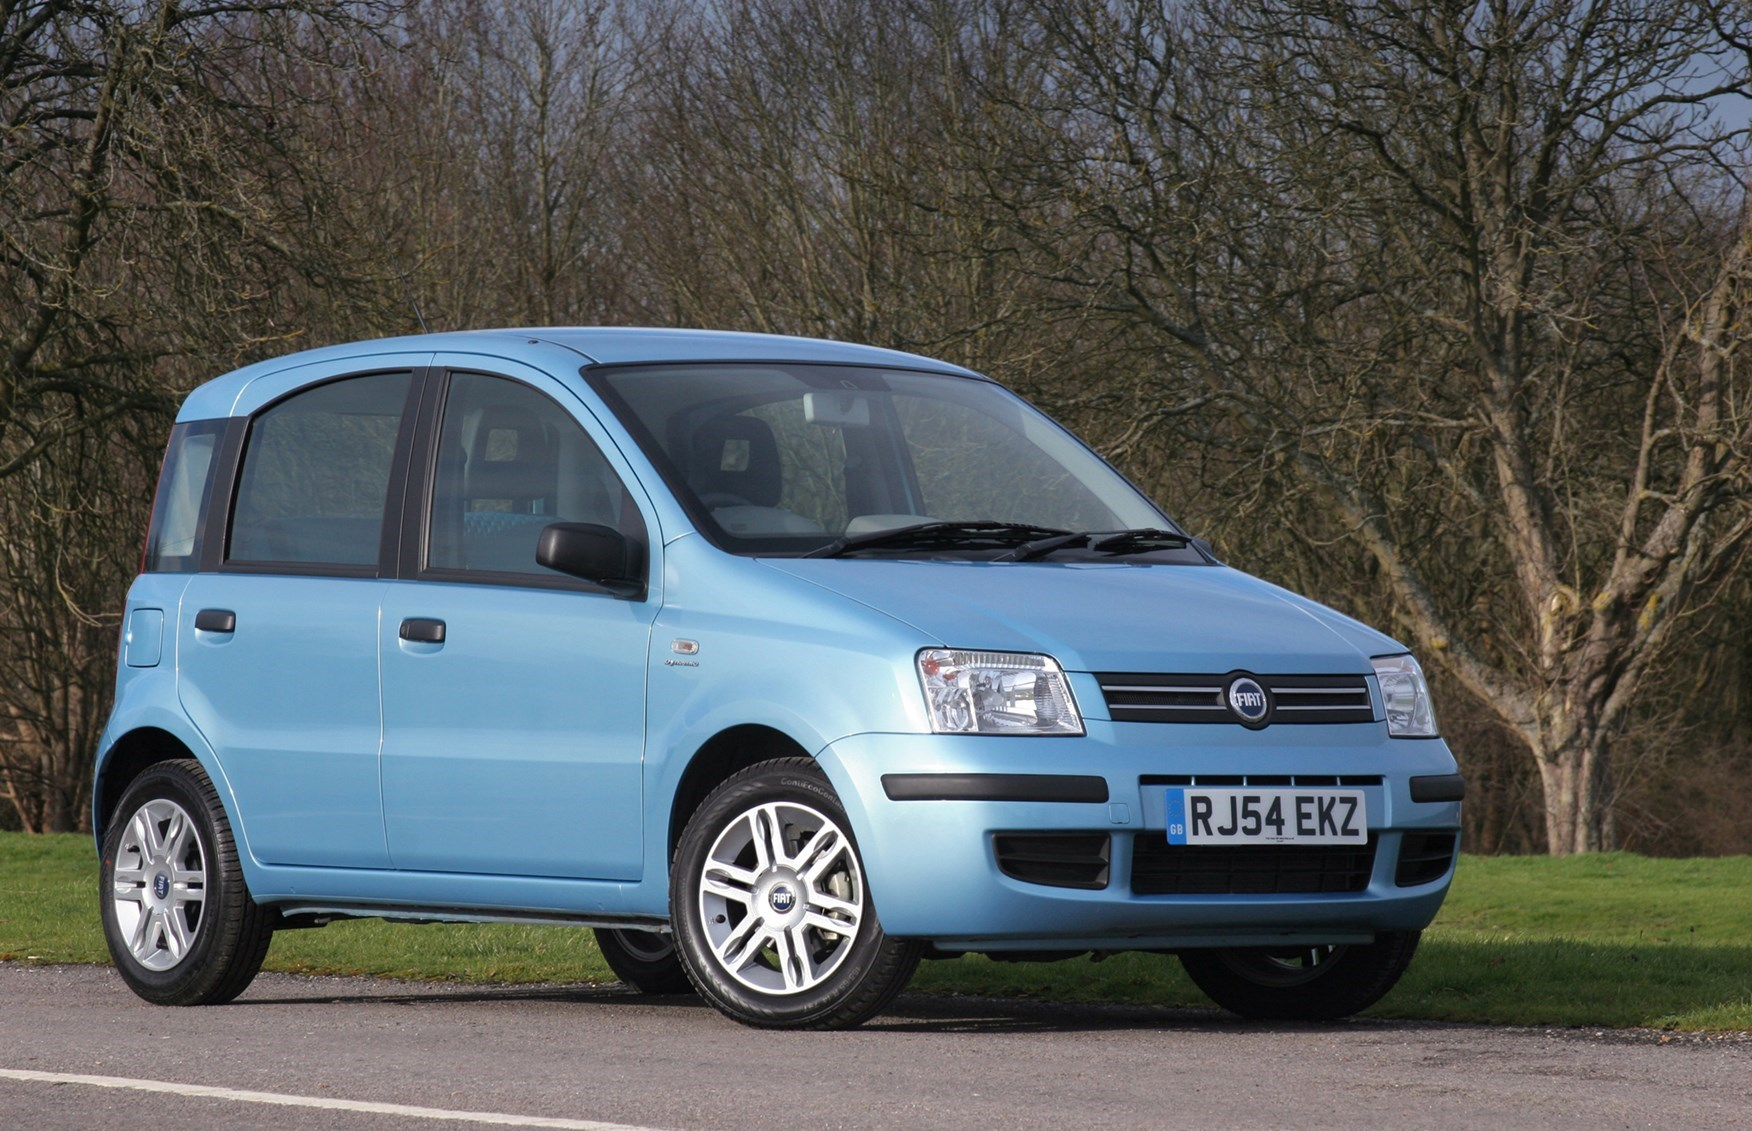 the fiat panda is one of the firm favourites for anyone on the lookout for a small and low cost car not only is this model capable of achieving 65mpg